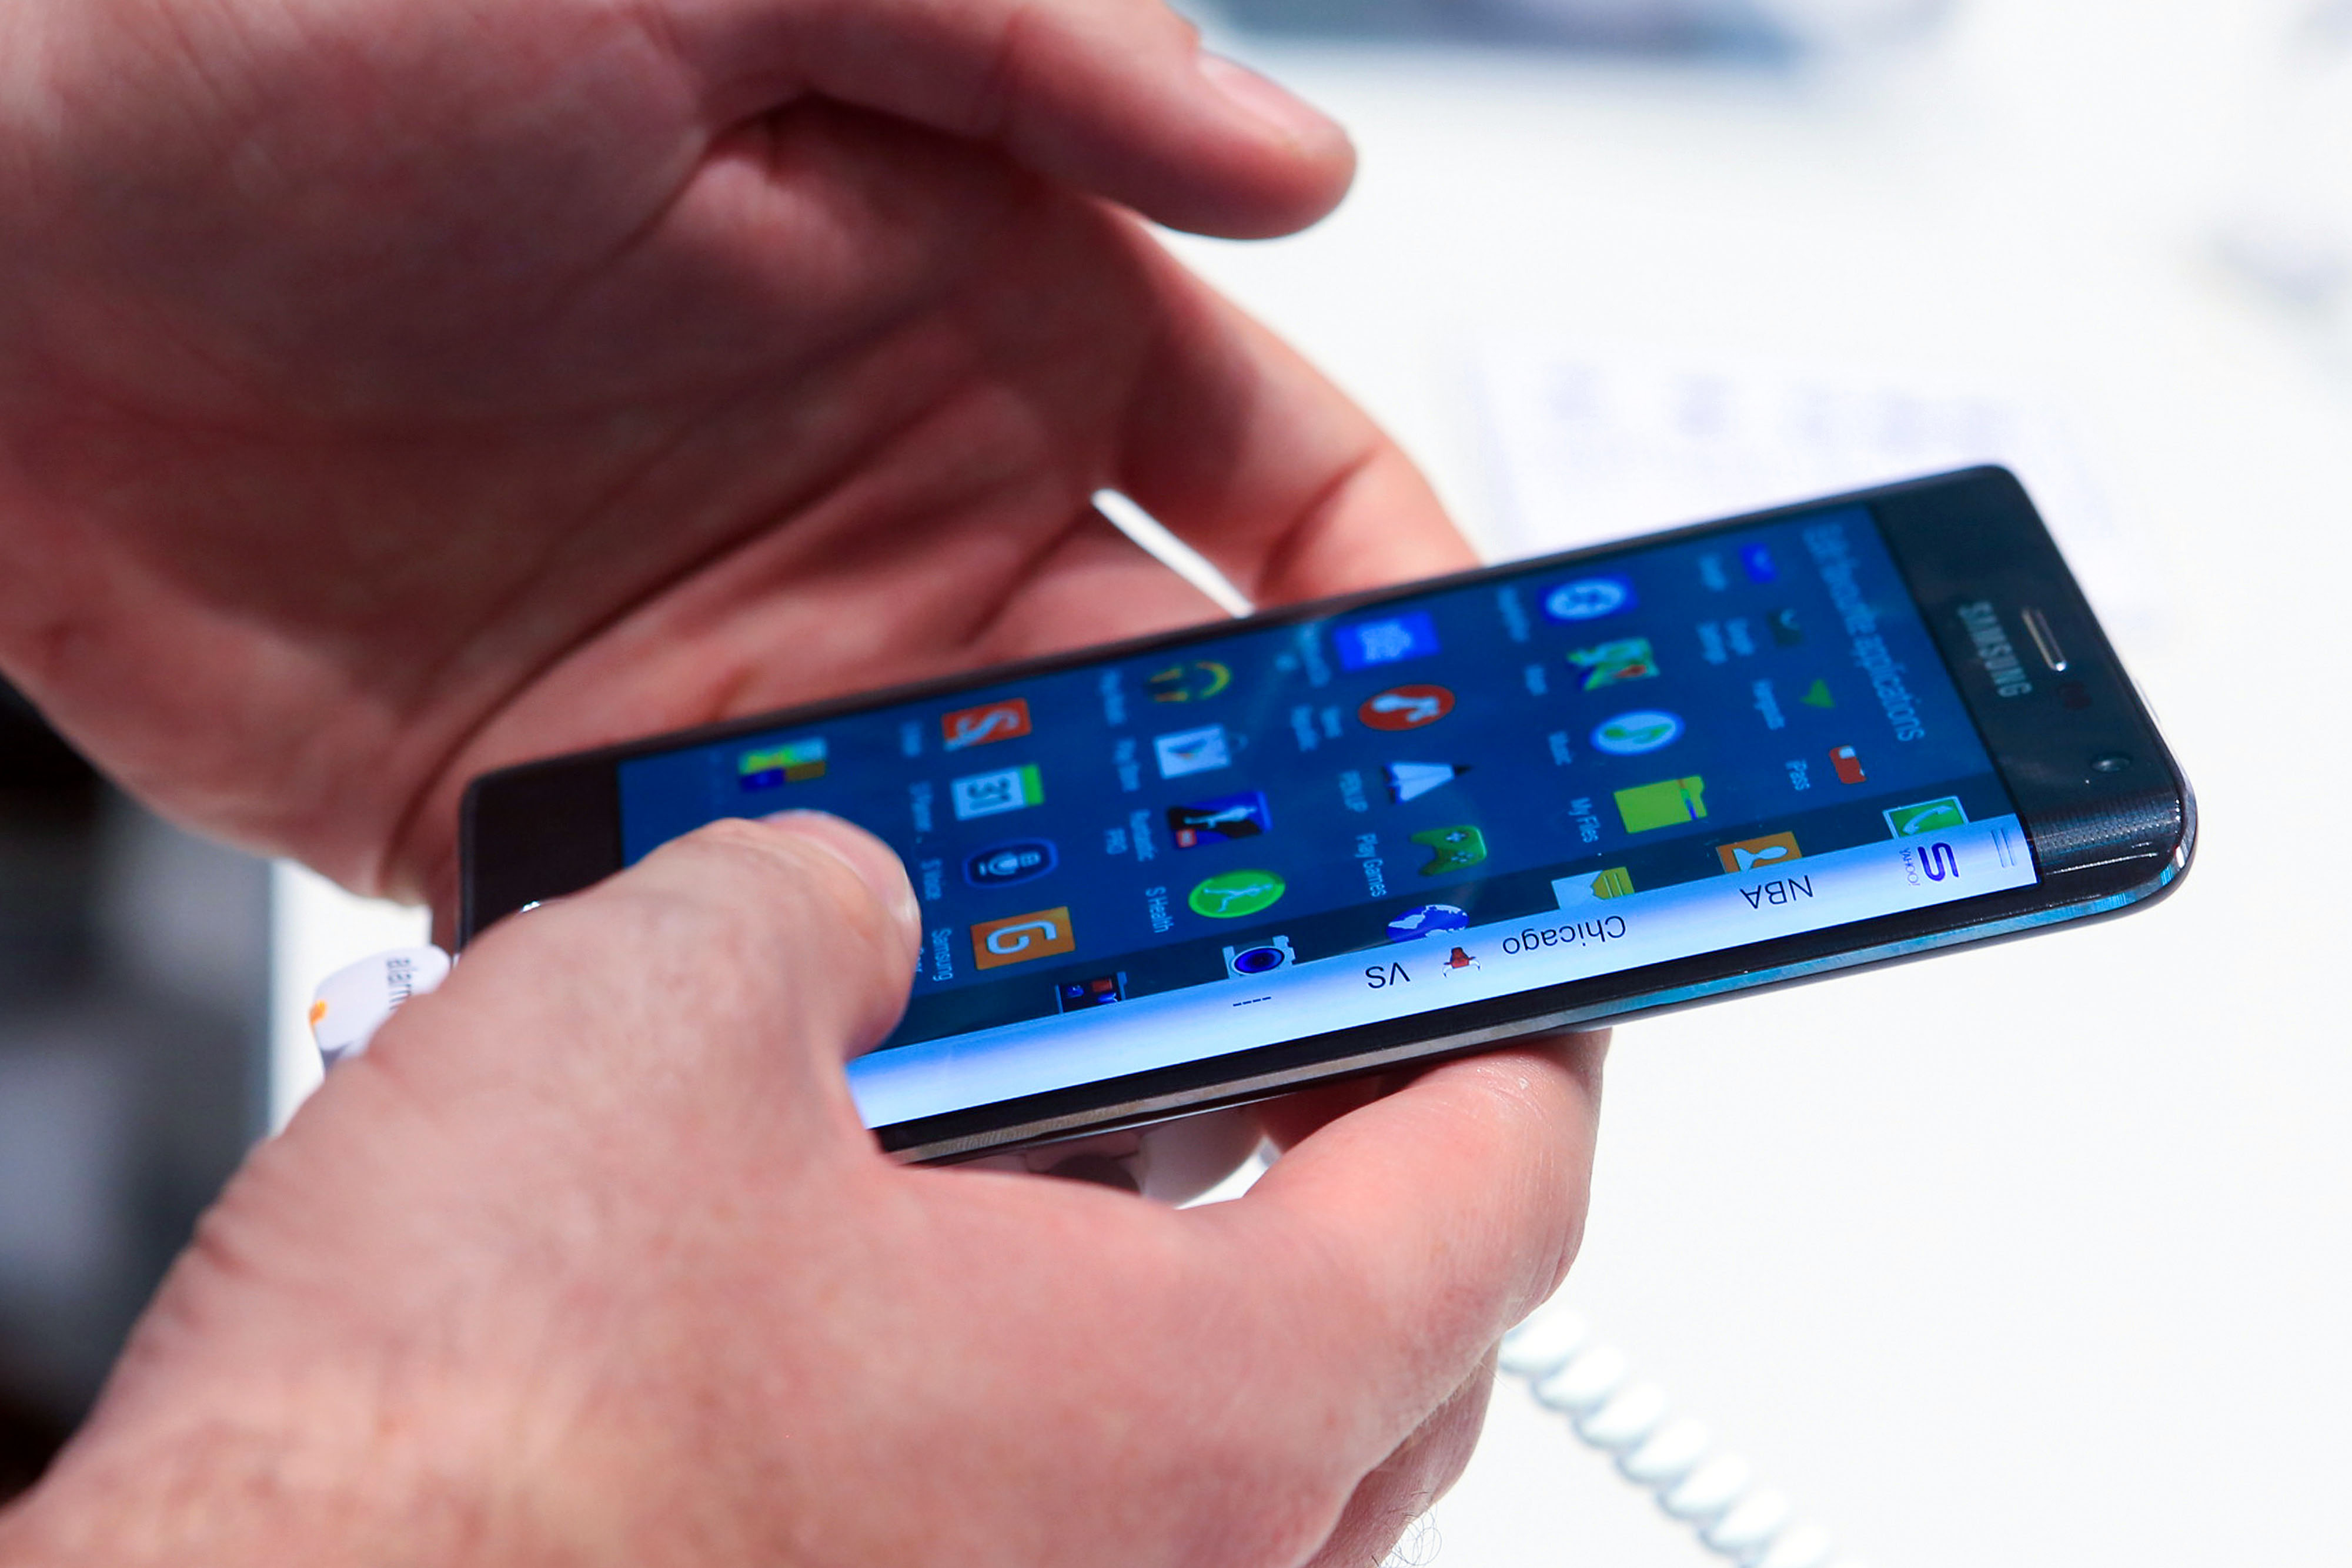 A visitor inspects a Samsung Galaxy Note Edge smartphone at the IFA Consumer Electronics Show in Berlin, Germany, on Friday, Sept. 5, 2014.